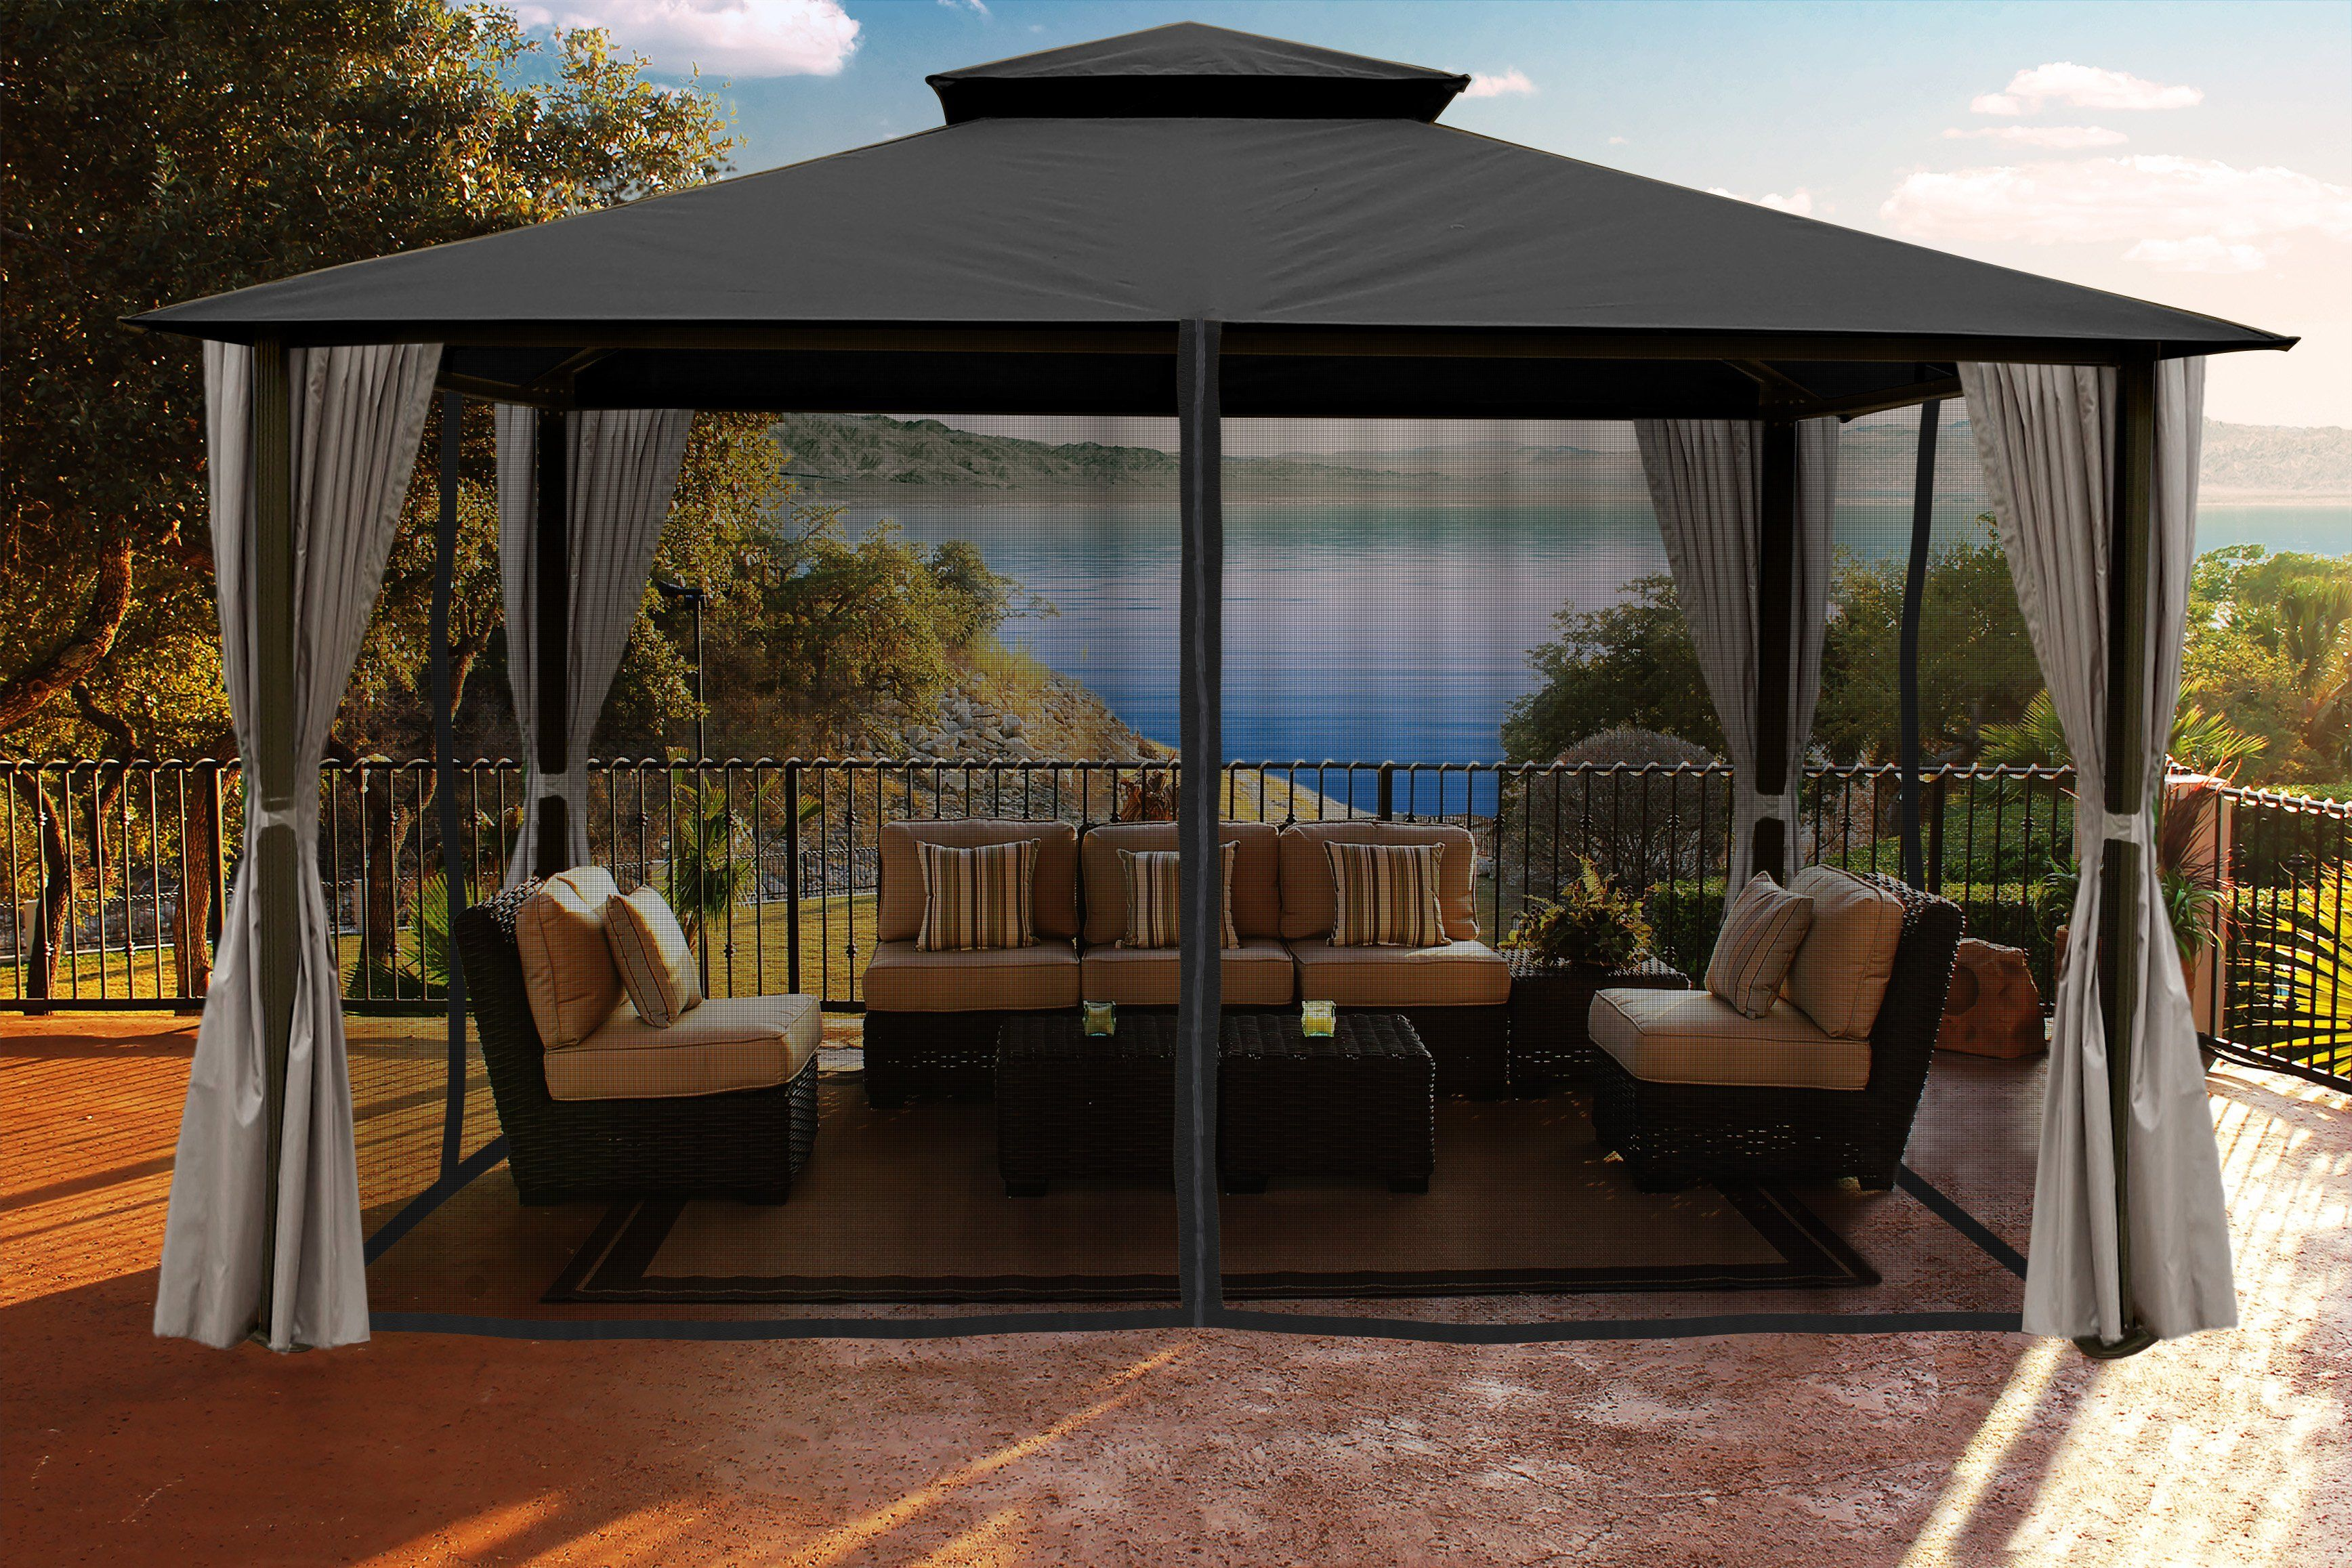 Paragon Outdoor Sedona Gazebo With Grey Color Roof And Privacy